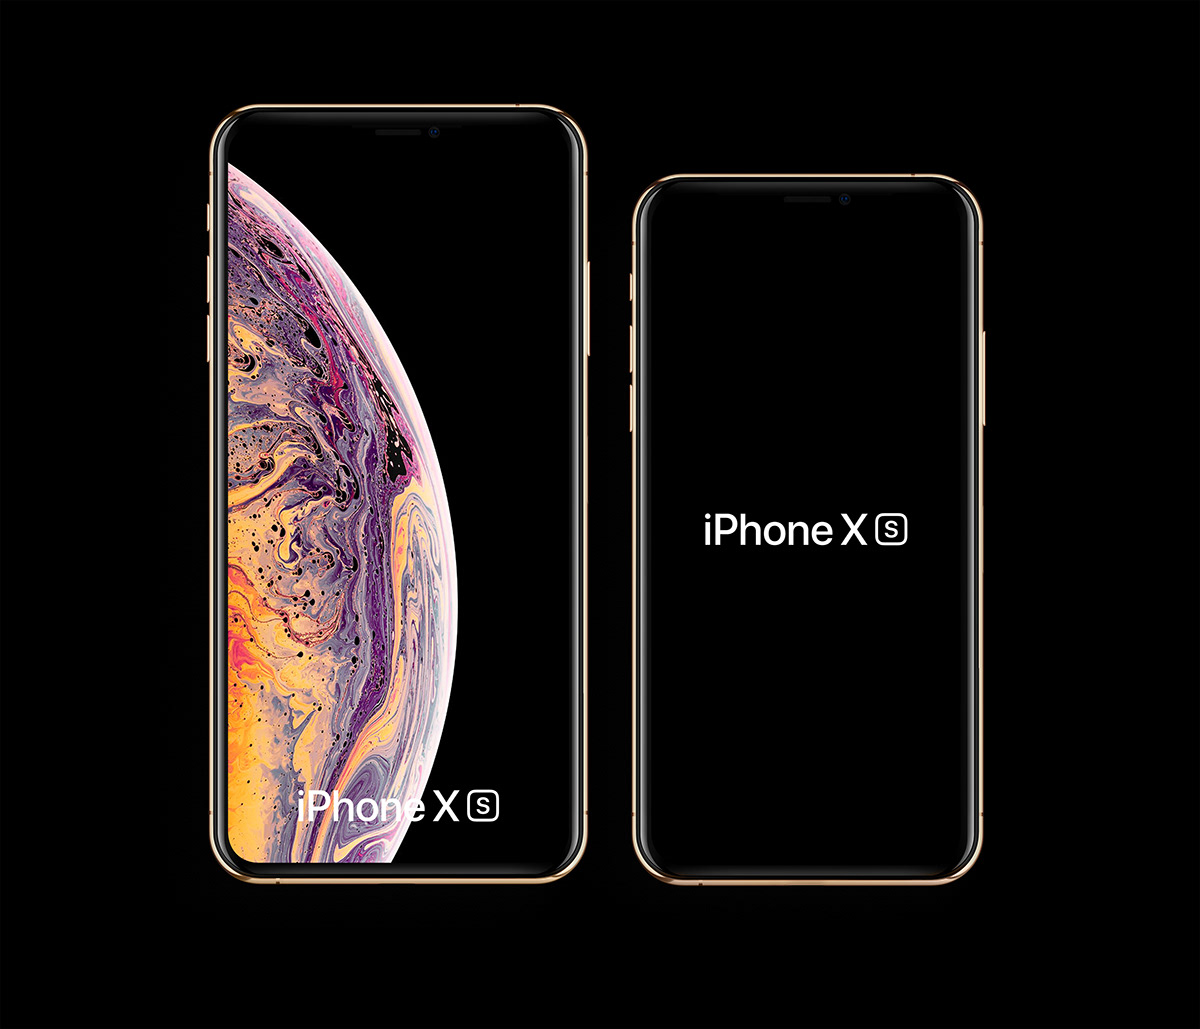 Free Mockups: iPhone Xs and iPhone Xs Max